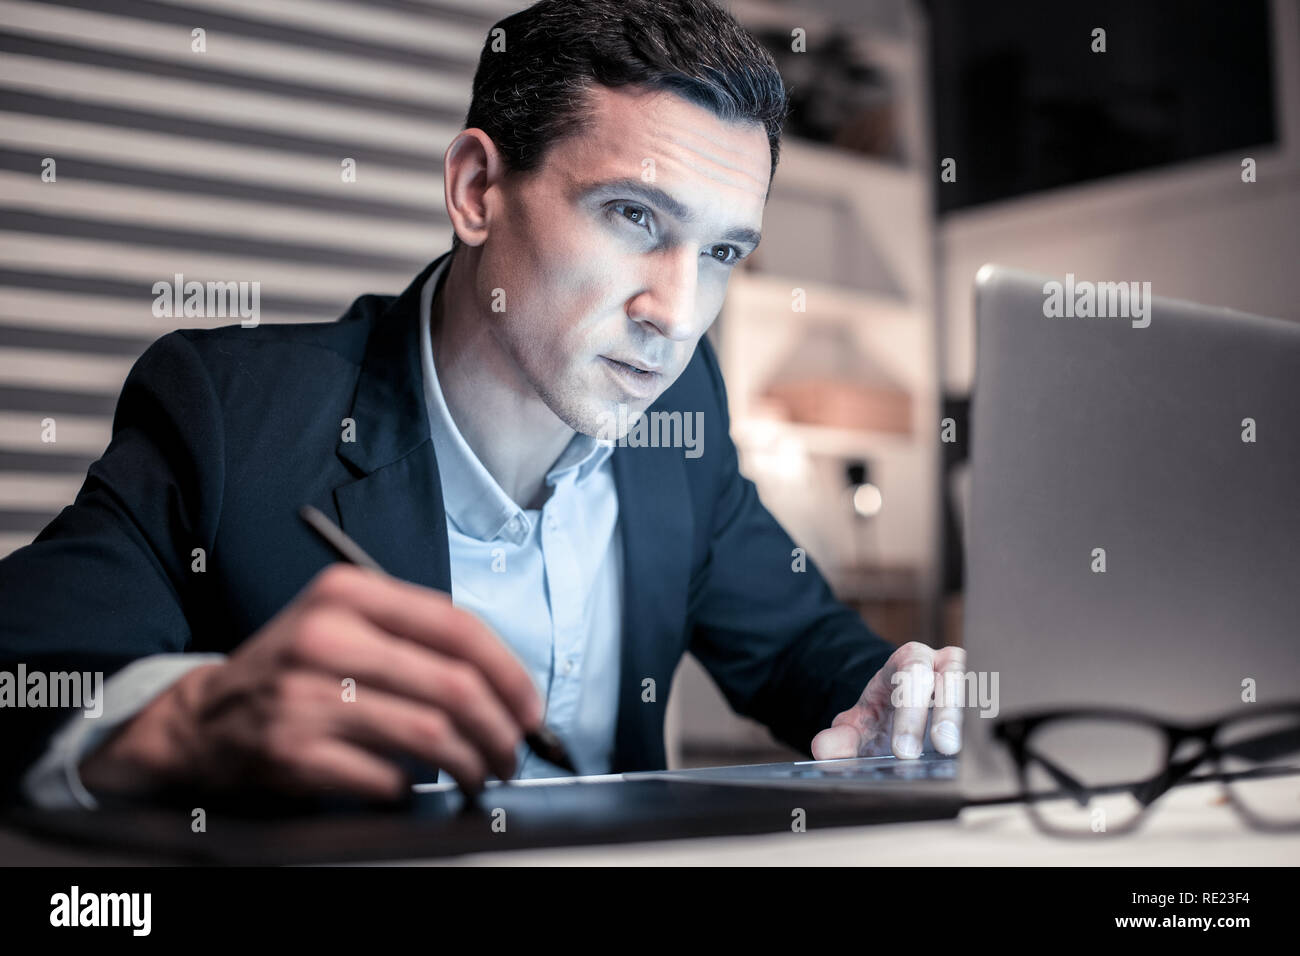 Professional smart man taking notes while working - Stock Image